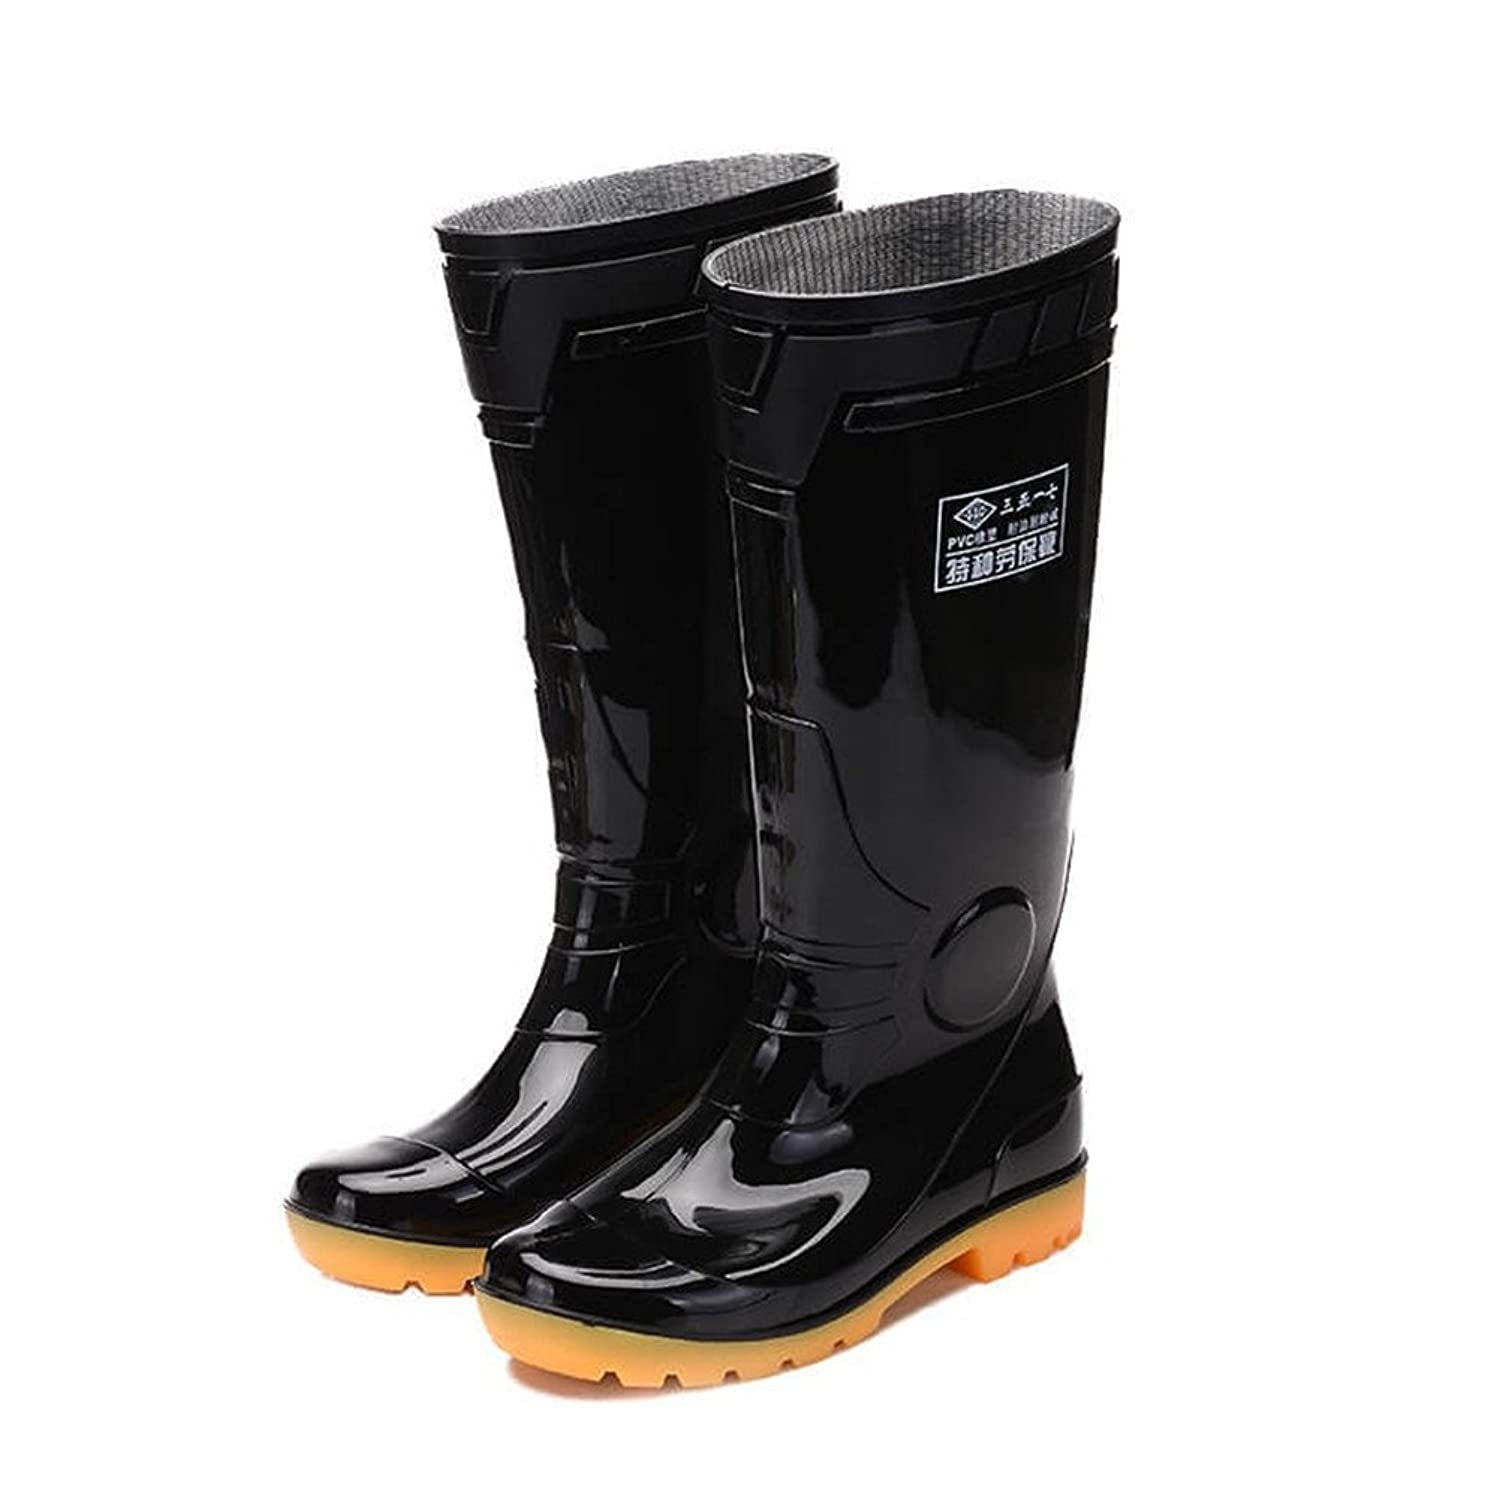 WHENOW Knee-High Rain Boots Rubber Boots Safety Shoes